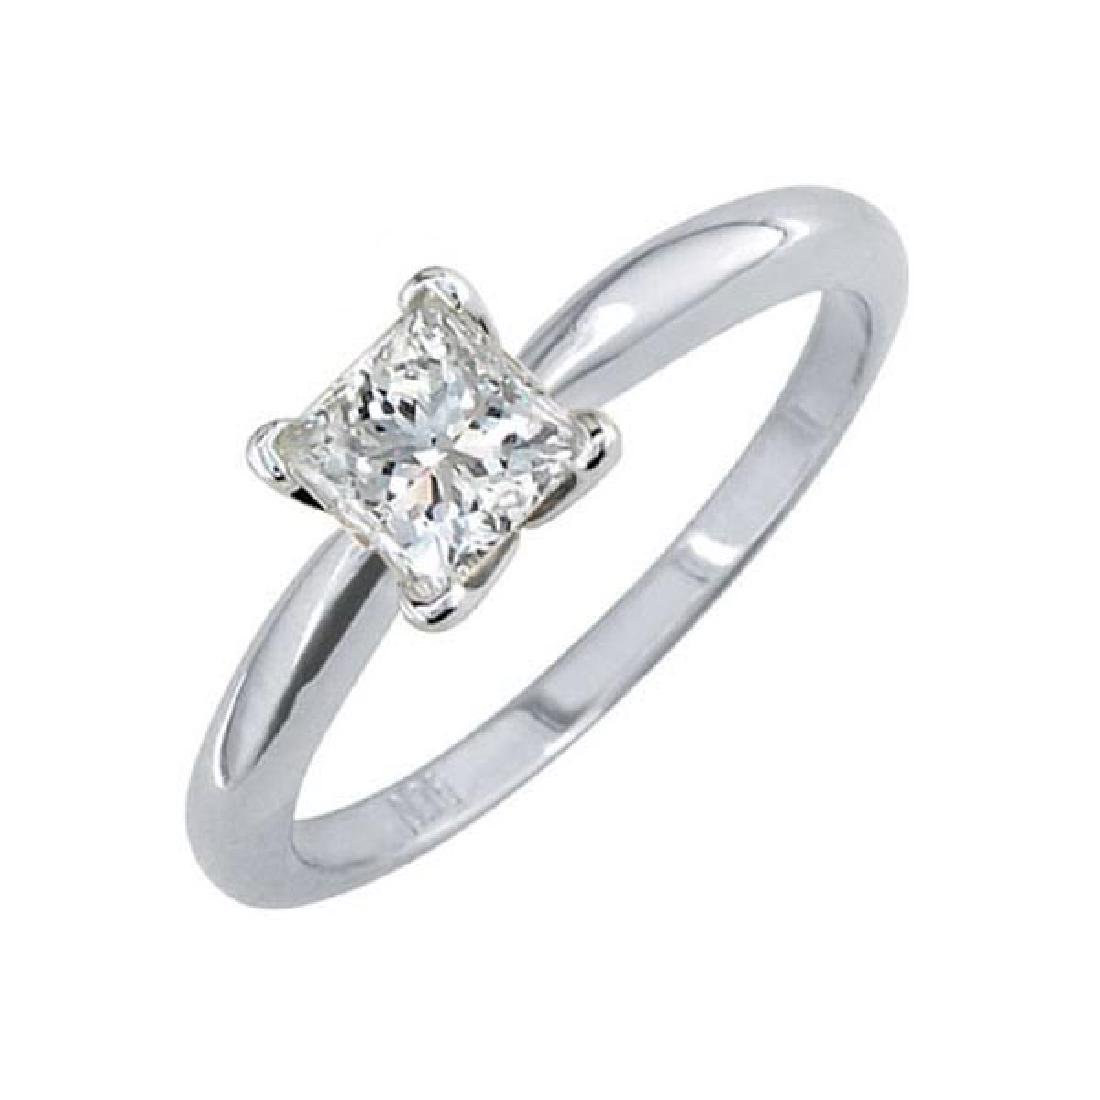 Certified 1.06 CTW Princess Diamond Solitaire 14k Ring